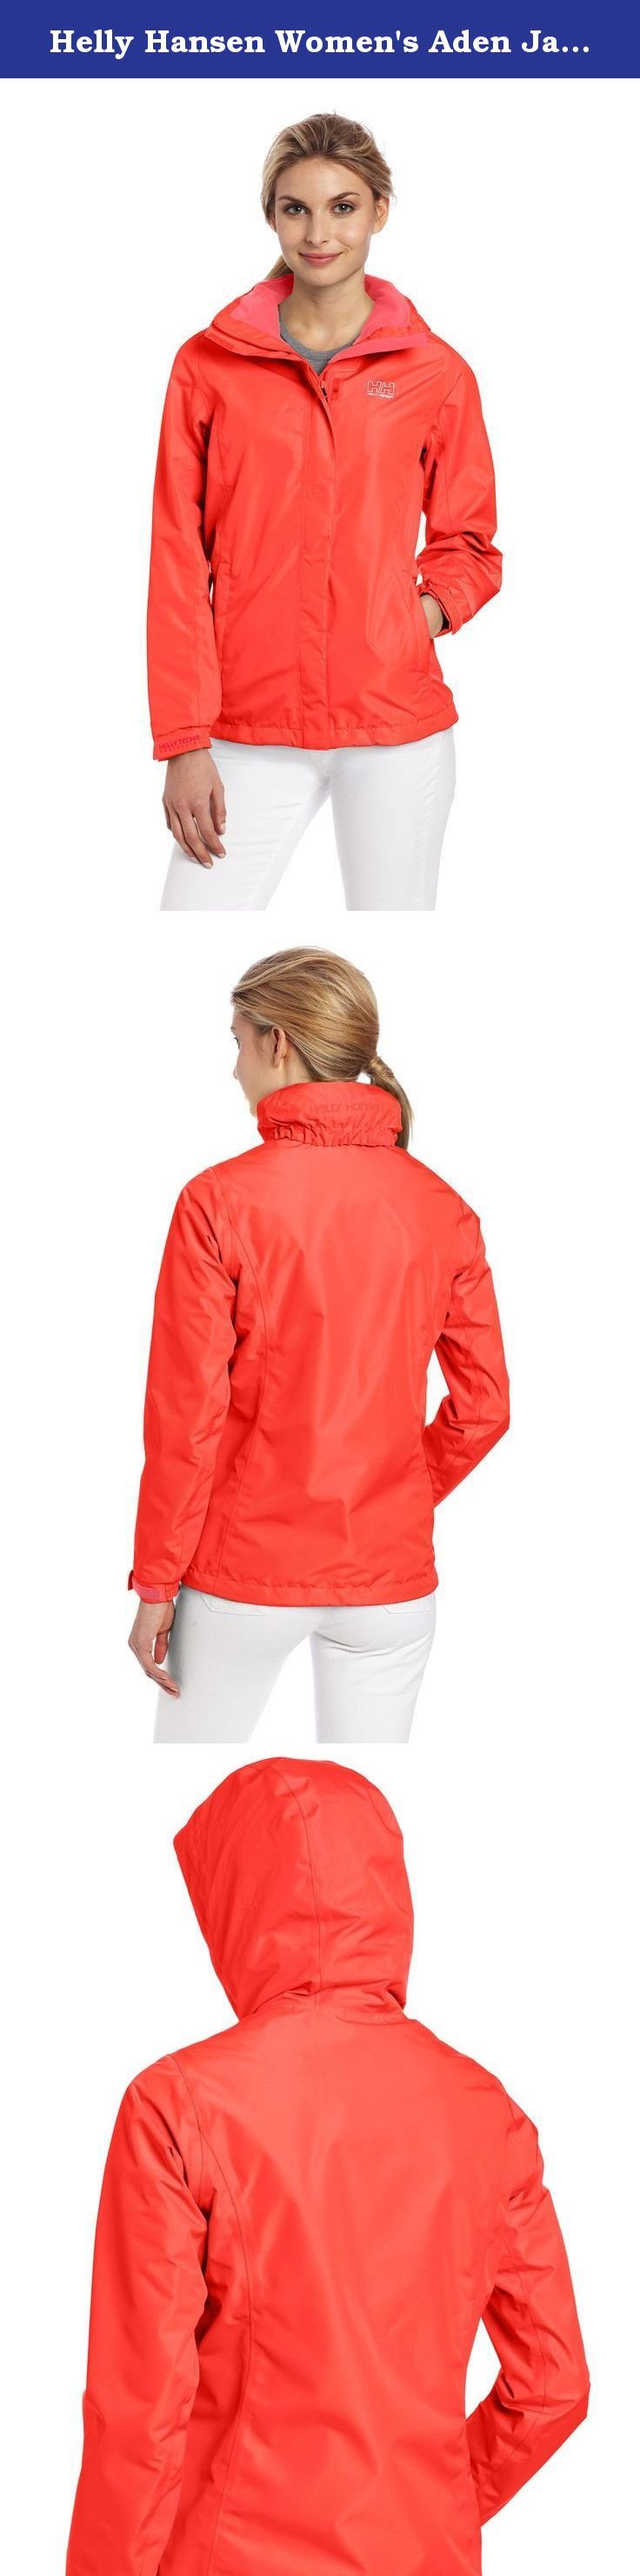 Helly Hansen Women's Aden Jacket, Summer Red, Large. A great-fitting and versatile Helly Tech rain jacket for women. Waterproof, breathable and windproof with fully sealed seams to protect you against the elements. Its quick-dry, lightweight lining adds comfort in both warm and cold weather. The great raincoat for the great outdoors.